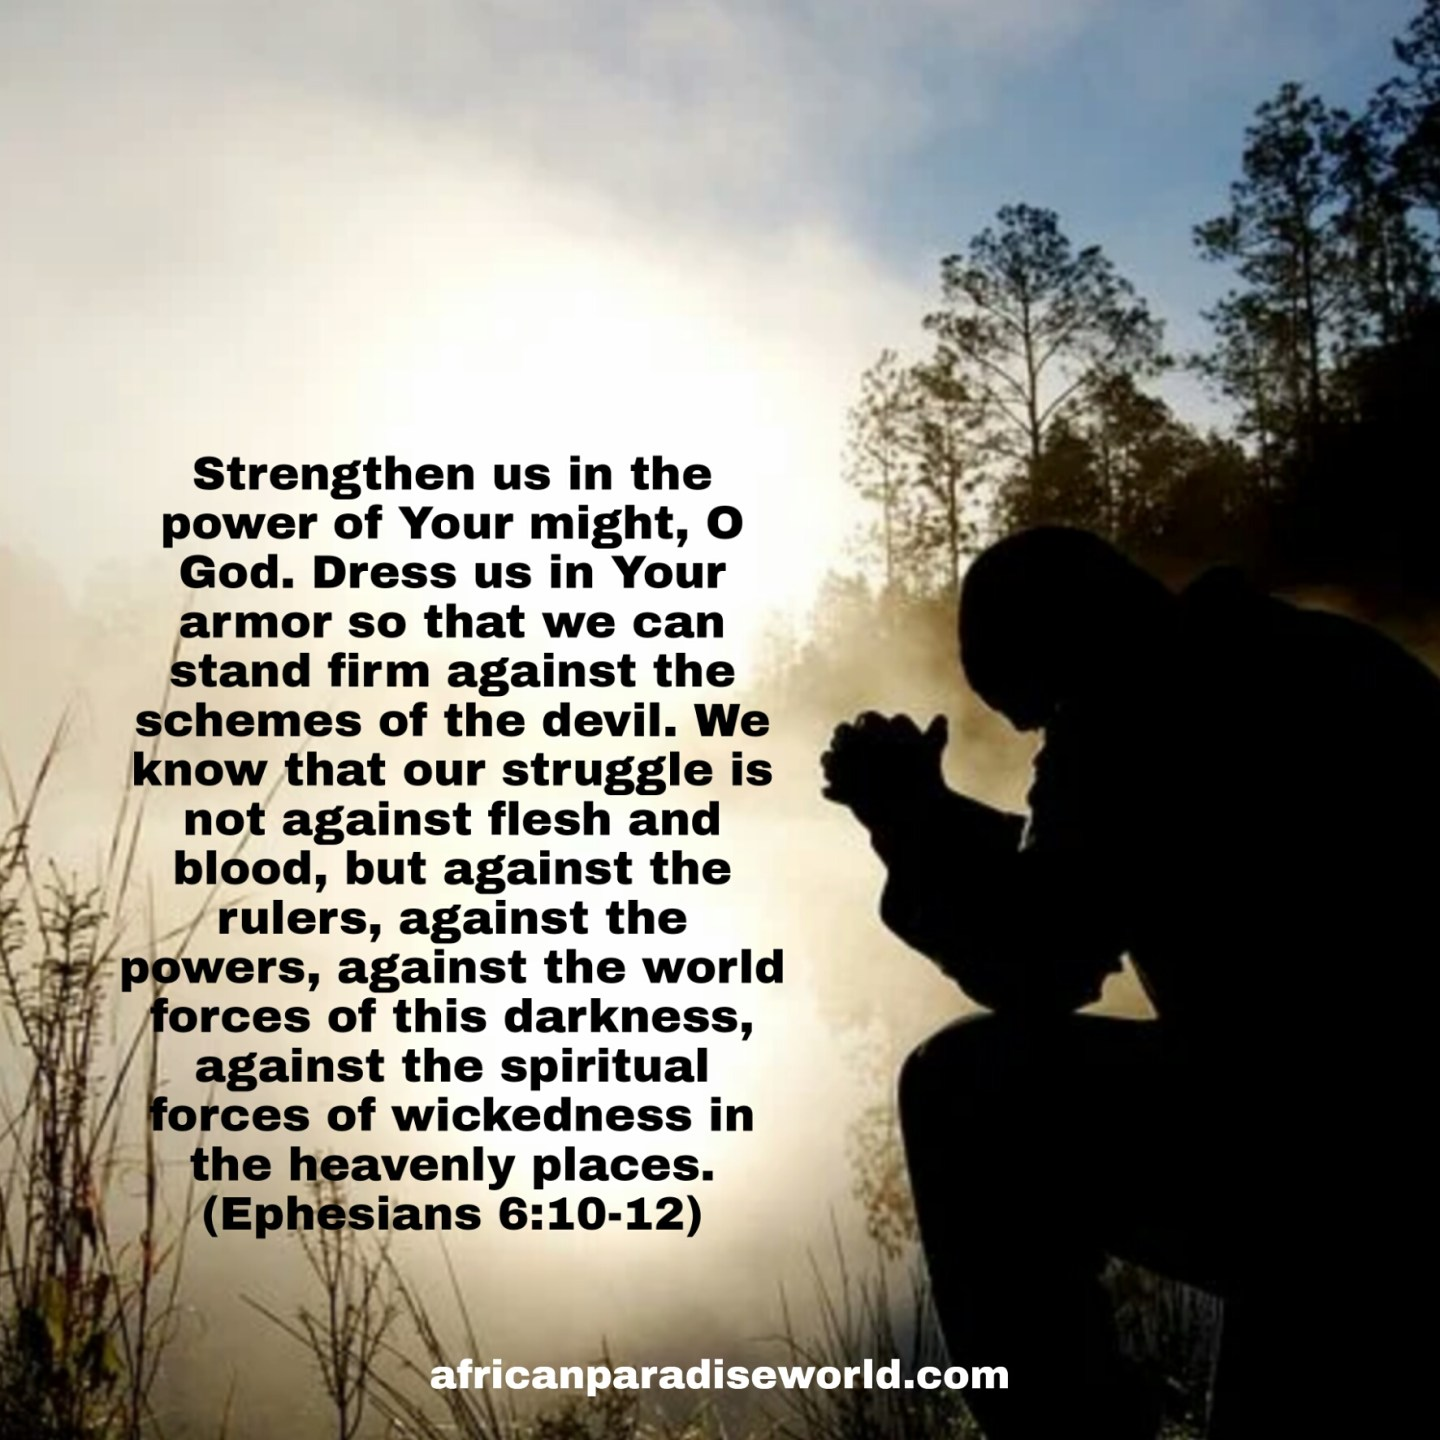 Pray for strength